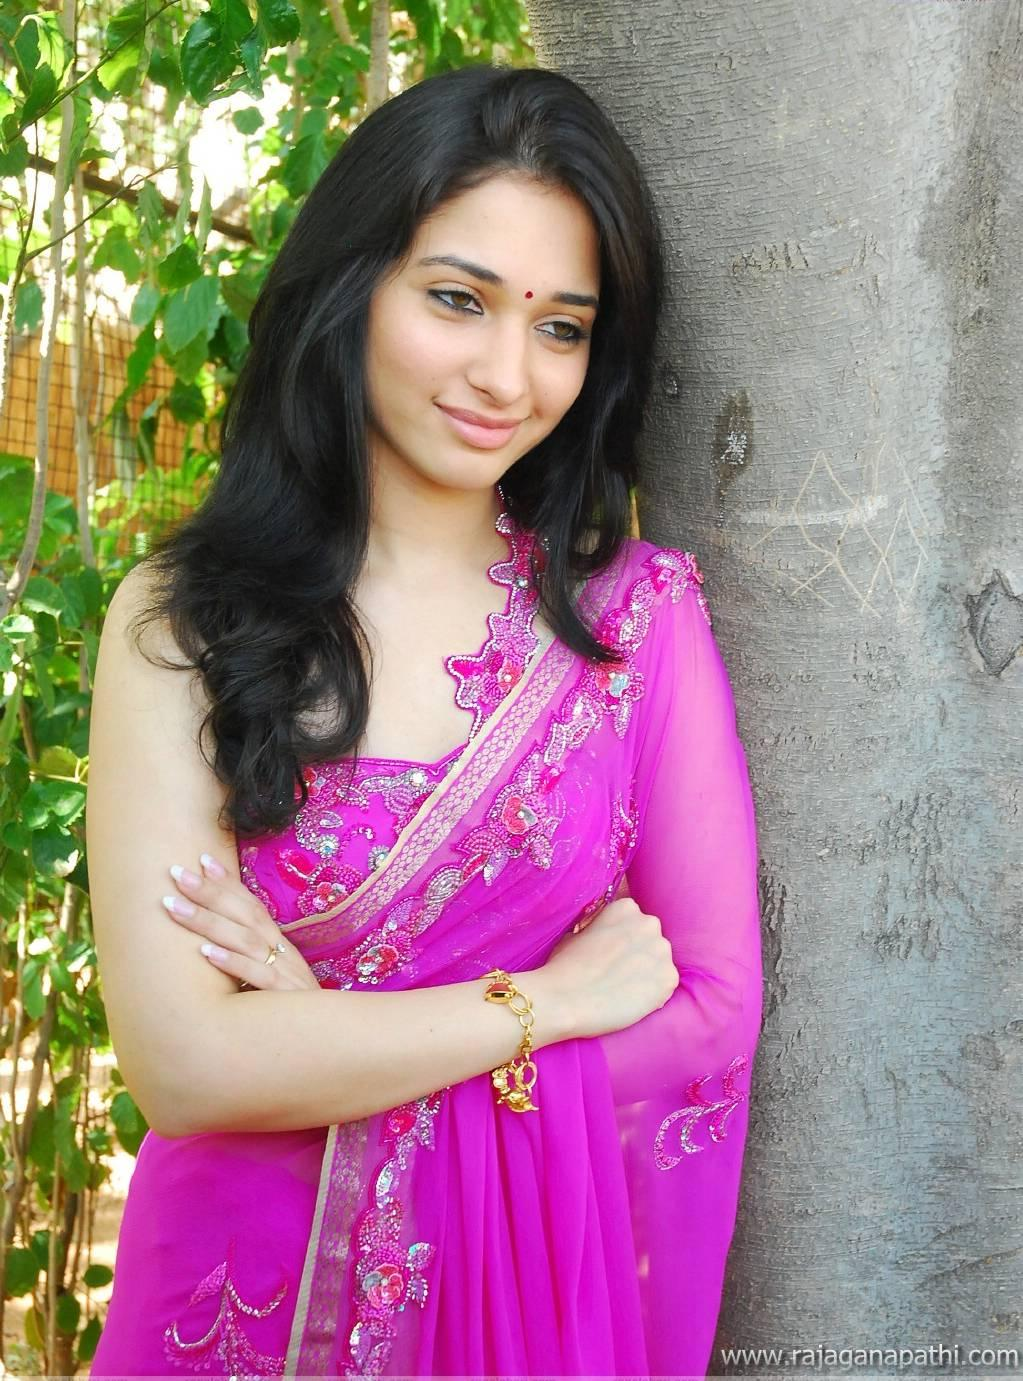 Tamanna Photo Gallery: SOUTH ACTRESS TAMANNA BHATIA IN SAREE HOT LATEST PHOTO